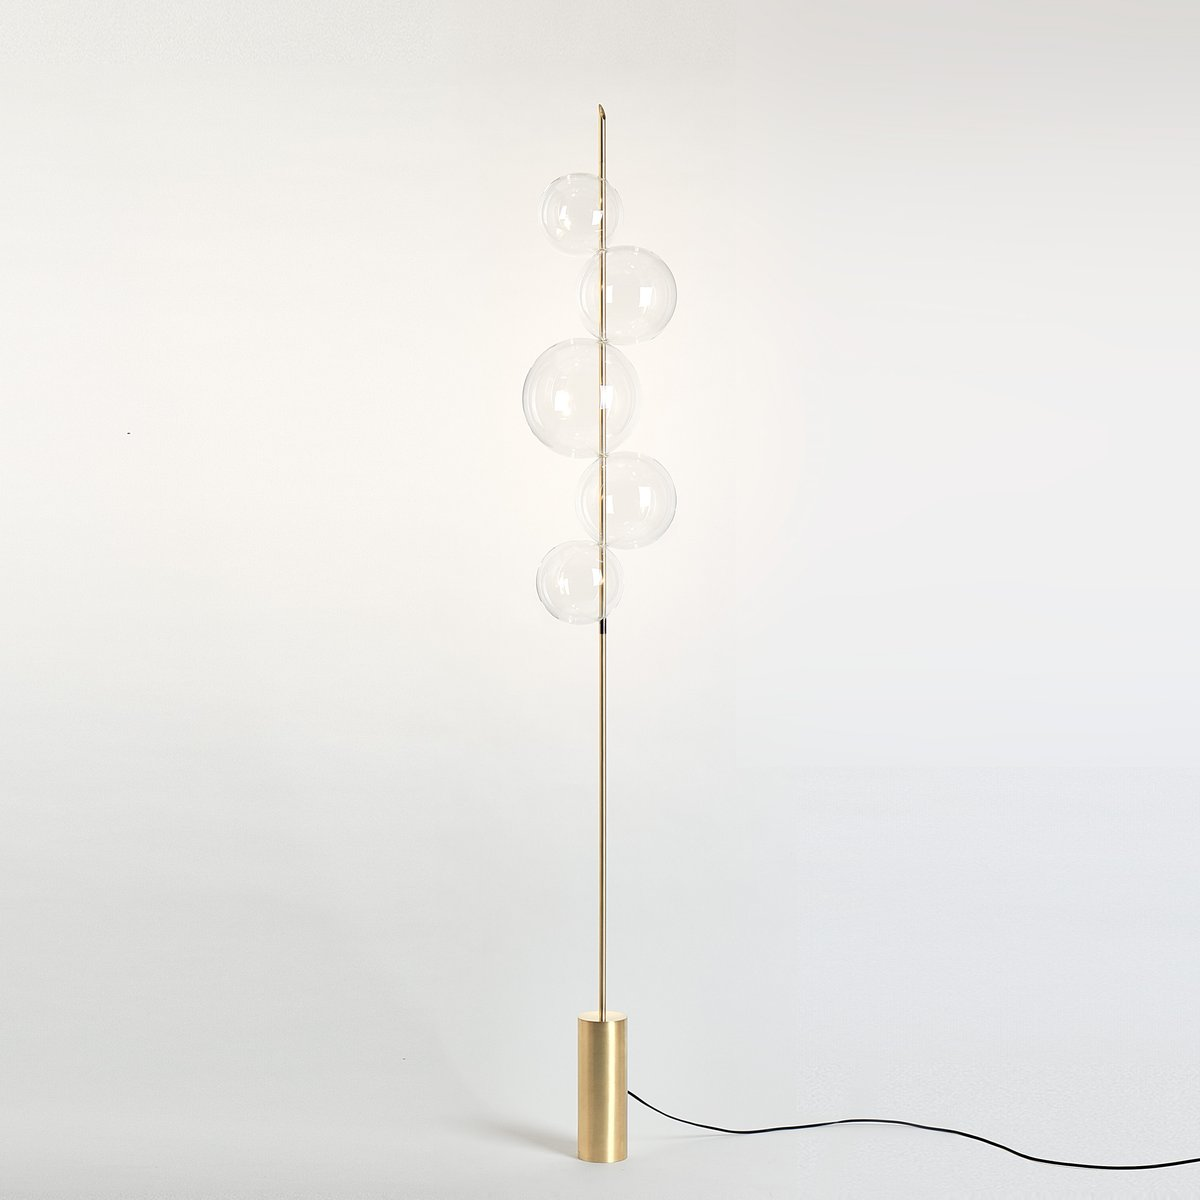 Grandine brushed brass floor lamp with 5 lights silviomondinostudio grandine brushed brass floor lamp with 5 lights silviomondinostudio aloadofball Choice Image